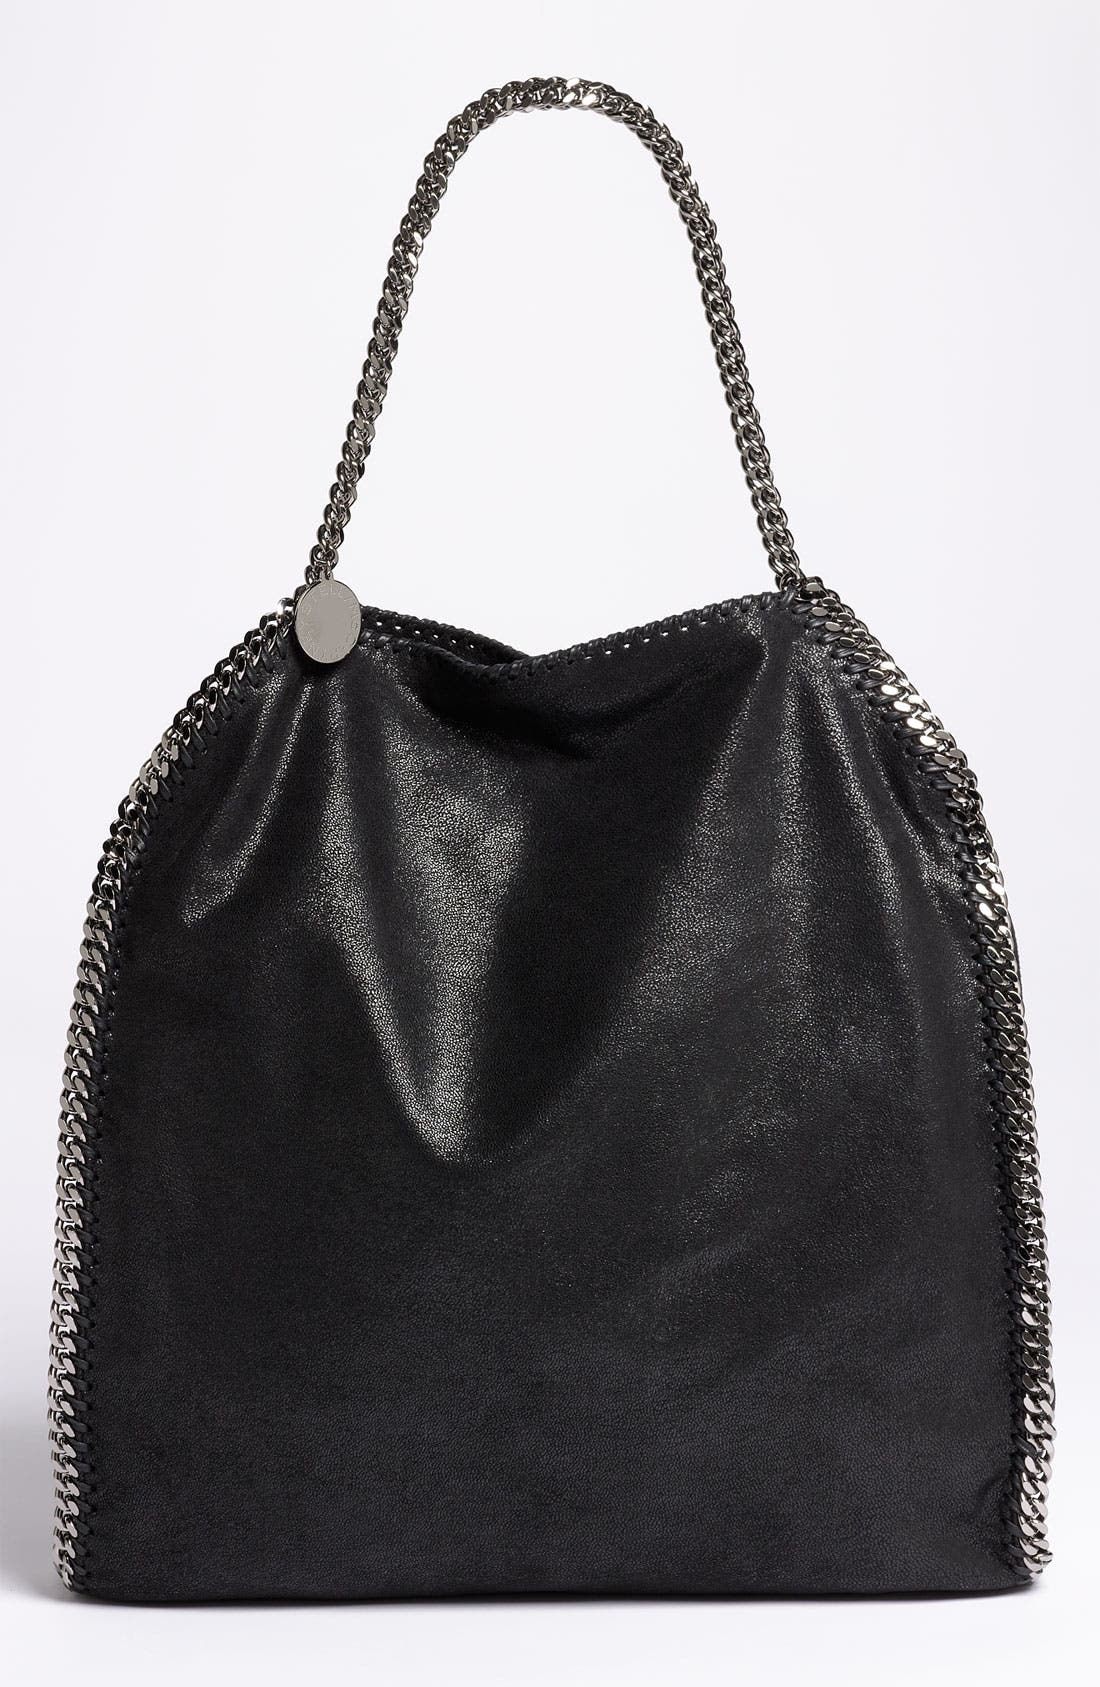 STELLA MCCARTNEY,                             'Large Falabella - Shaggy Deer' Faux Leather Tote,                             Main thumbnail 1, color,                             001